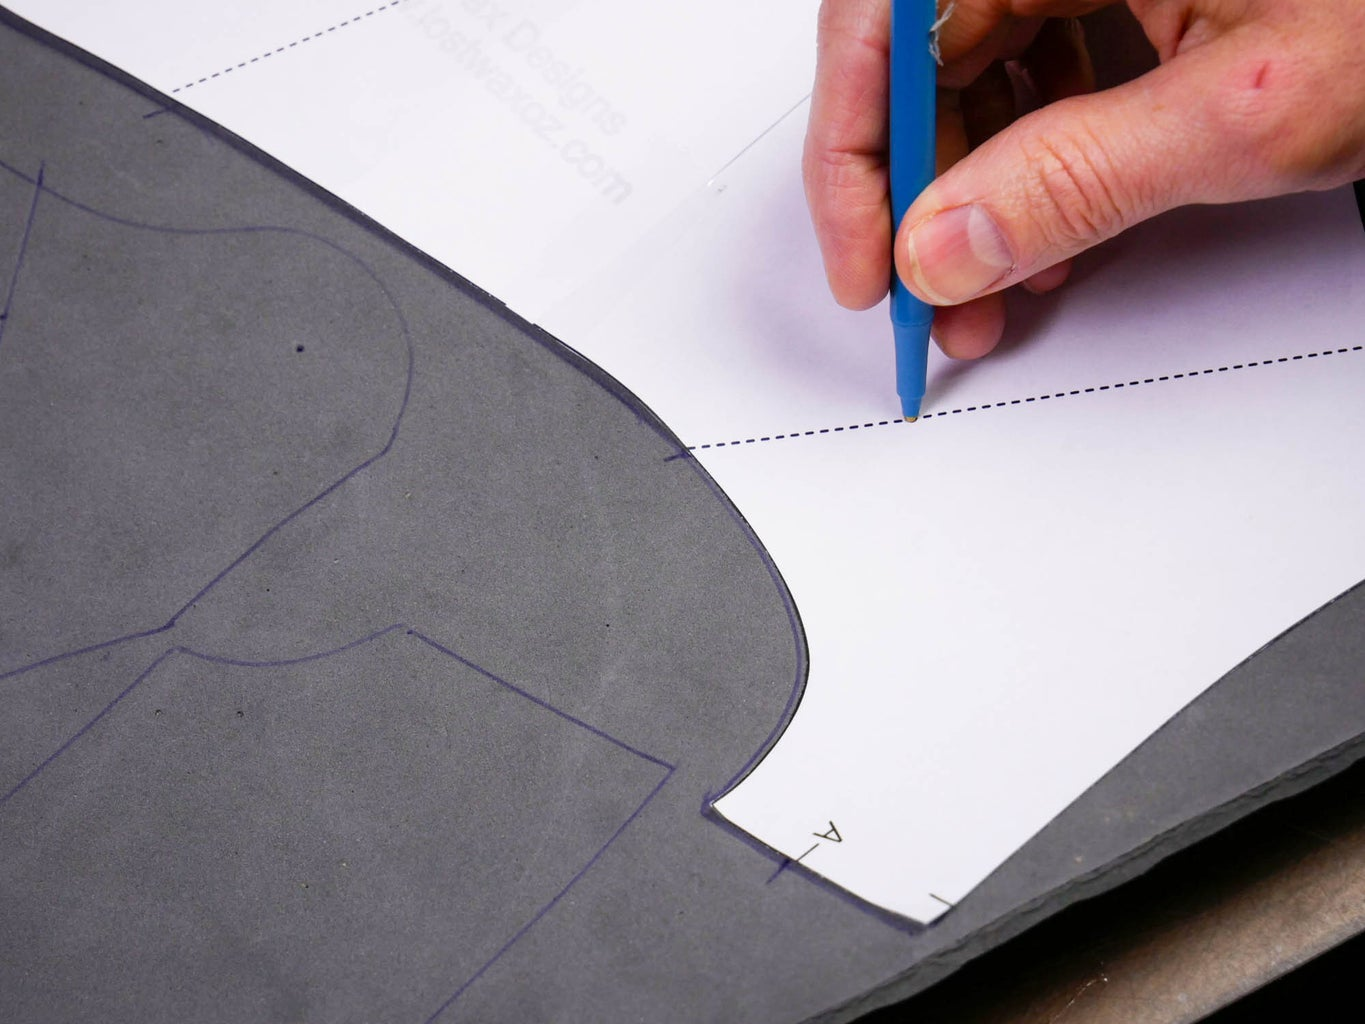 Cut and Trace the Pattern